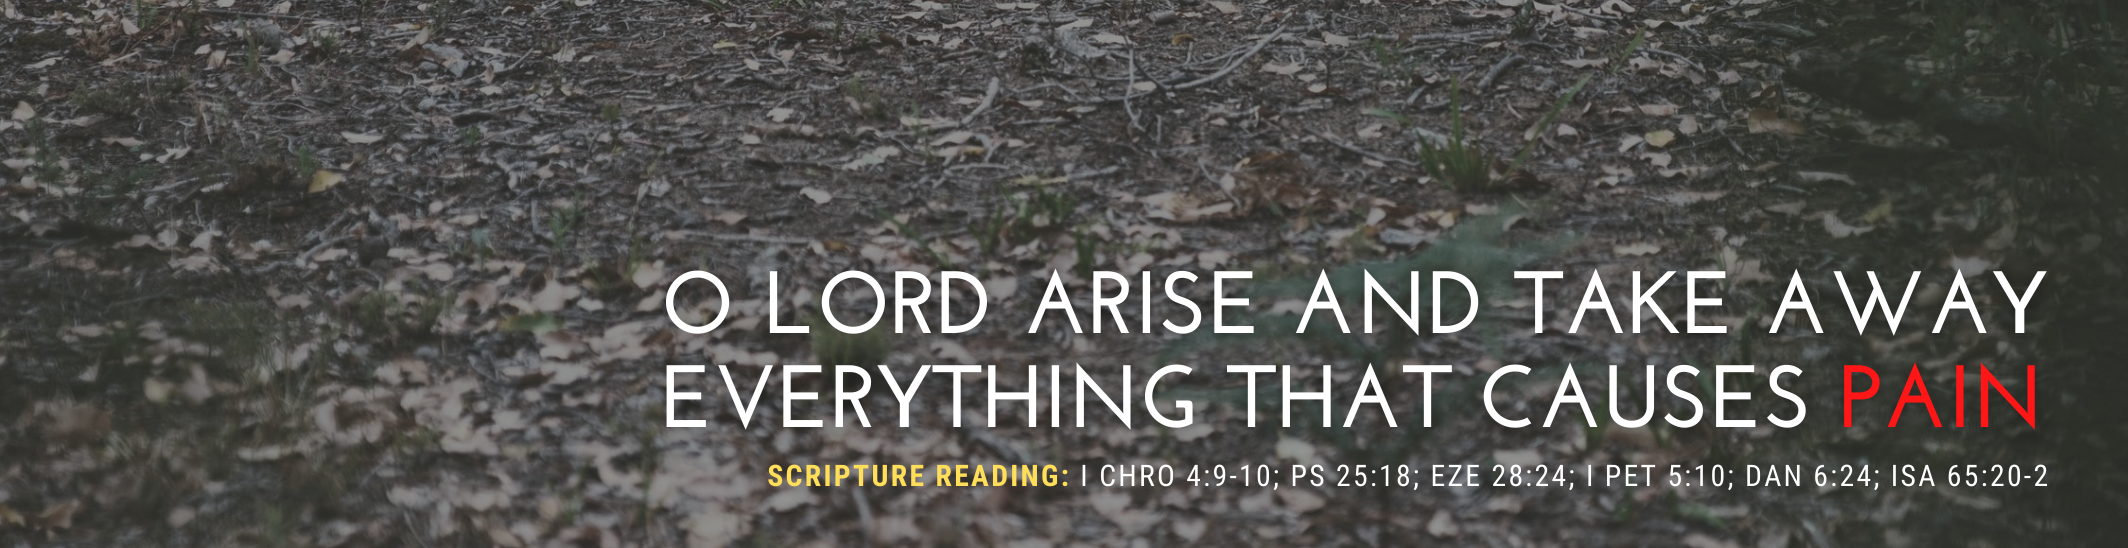 O LORD ARISE AND TAKE AWAY EVERYTHING THAT CAUSES PAIN